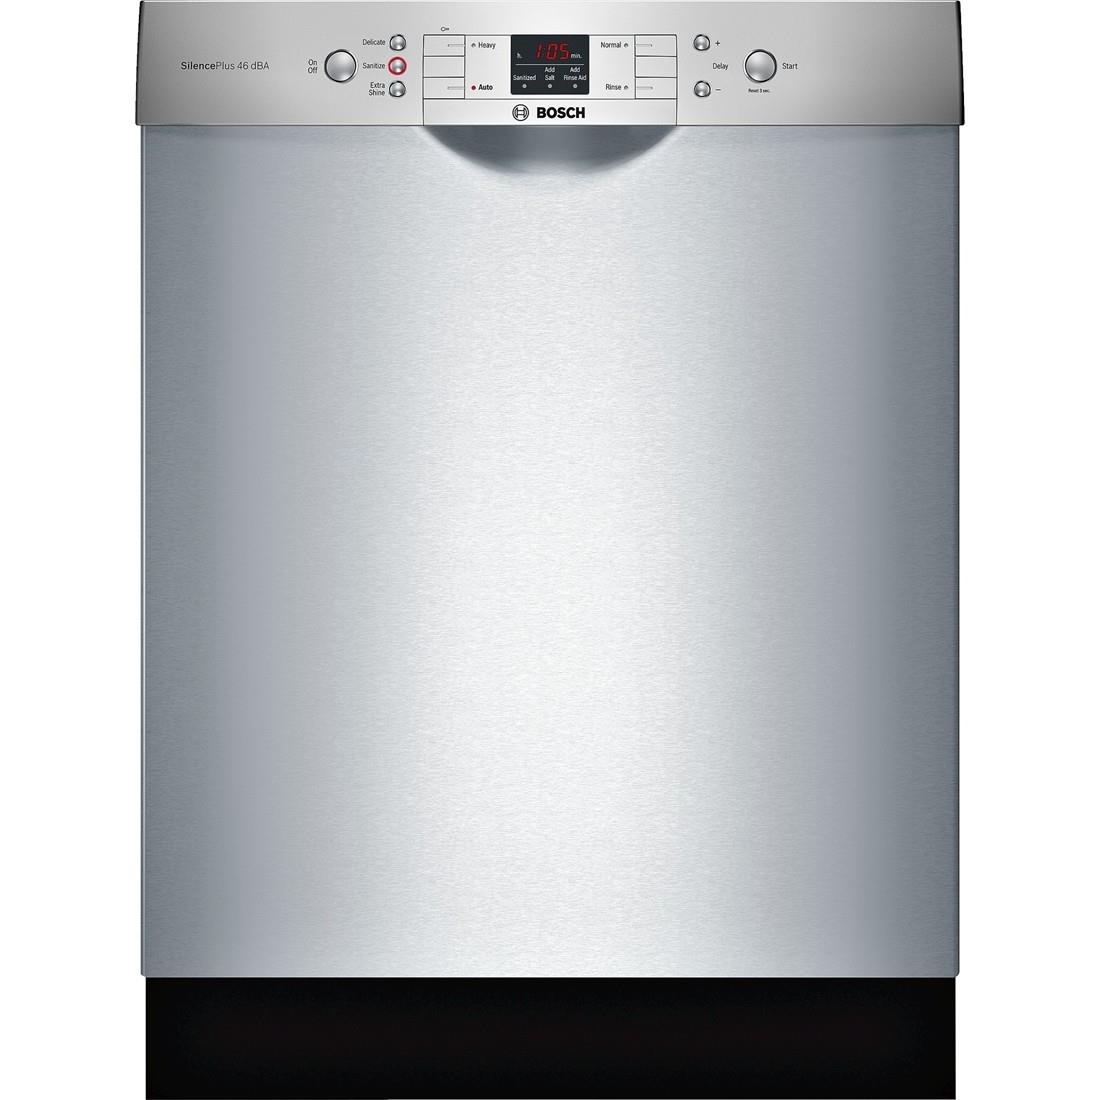 """Dishwashers 24"""" Built-In Dishwasher by Bosch at Fisher Home Furnishings"""